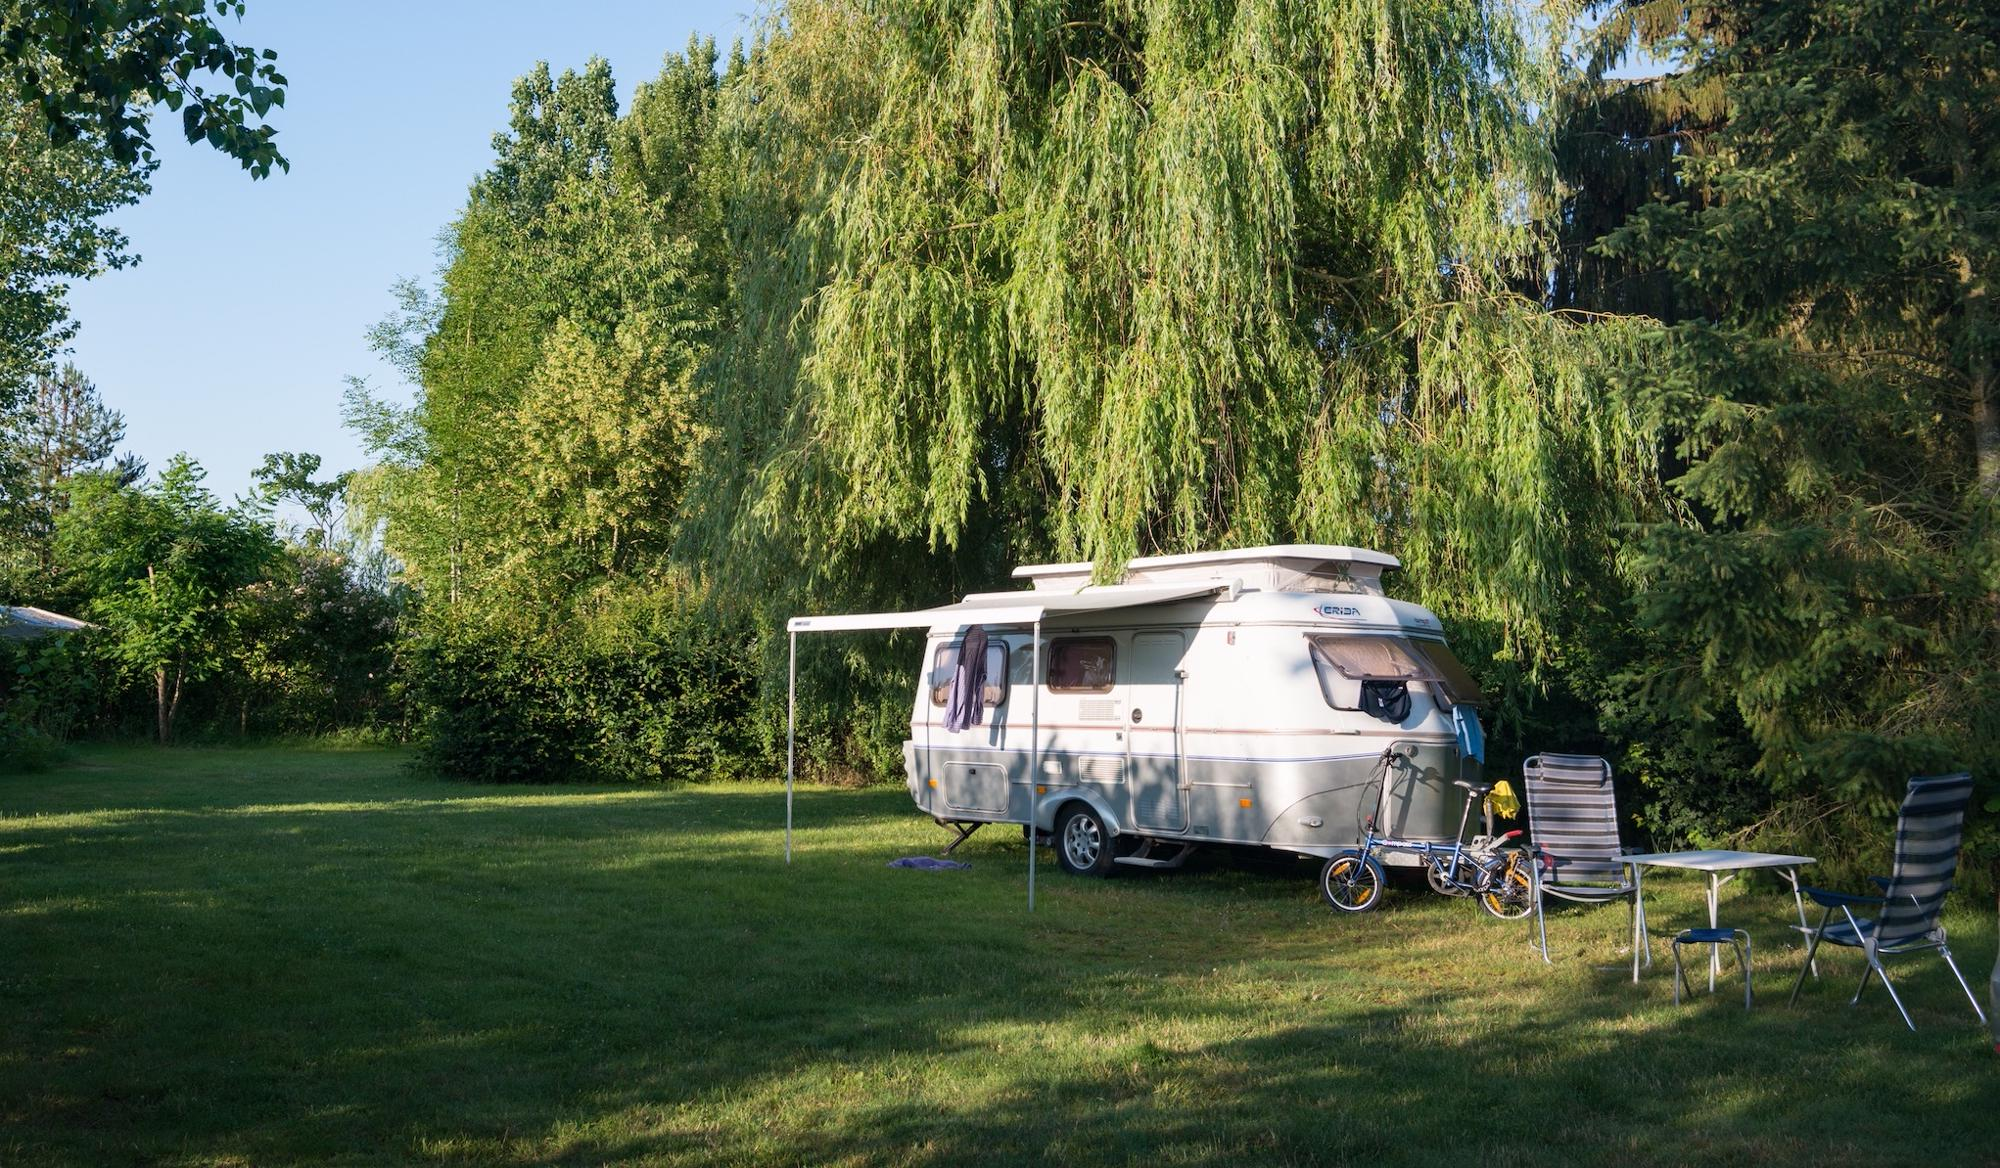 Accessible Campsites France | Wheelchair Access & Disabled Camping Facilities